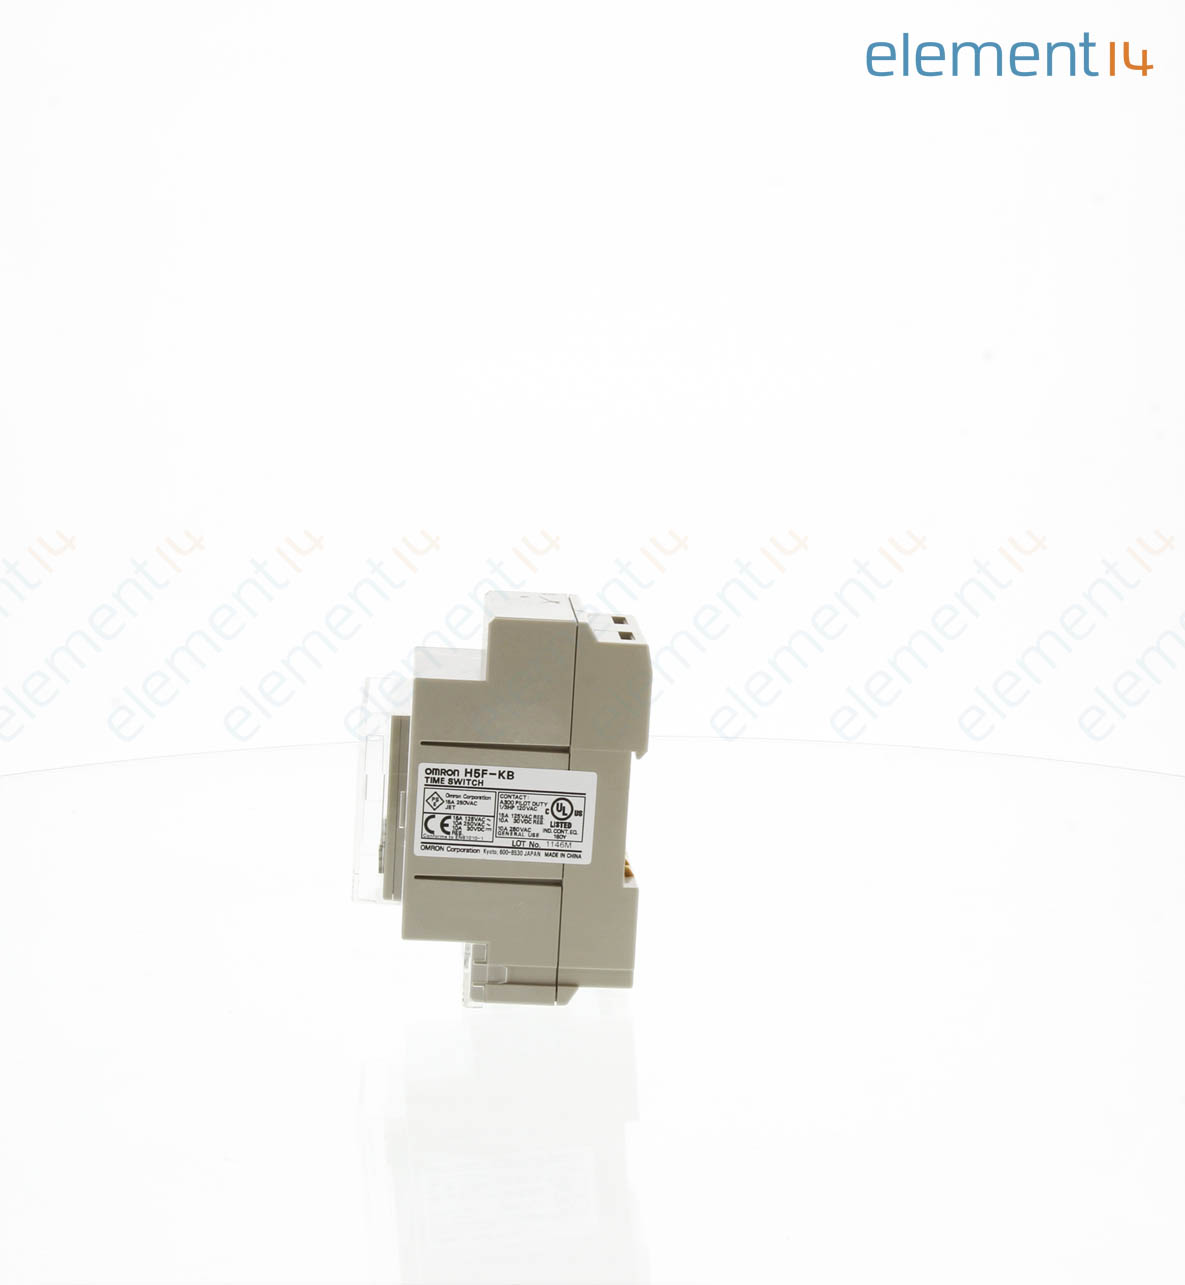 H5f Kb Omron Industrial Automation Panel Mount Timer Digital Tahmid39s Blog Ac Power Control With Thyristor Pulse Skipping Using Add To Compare